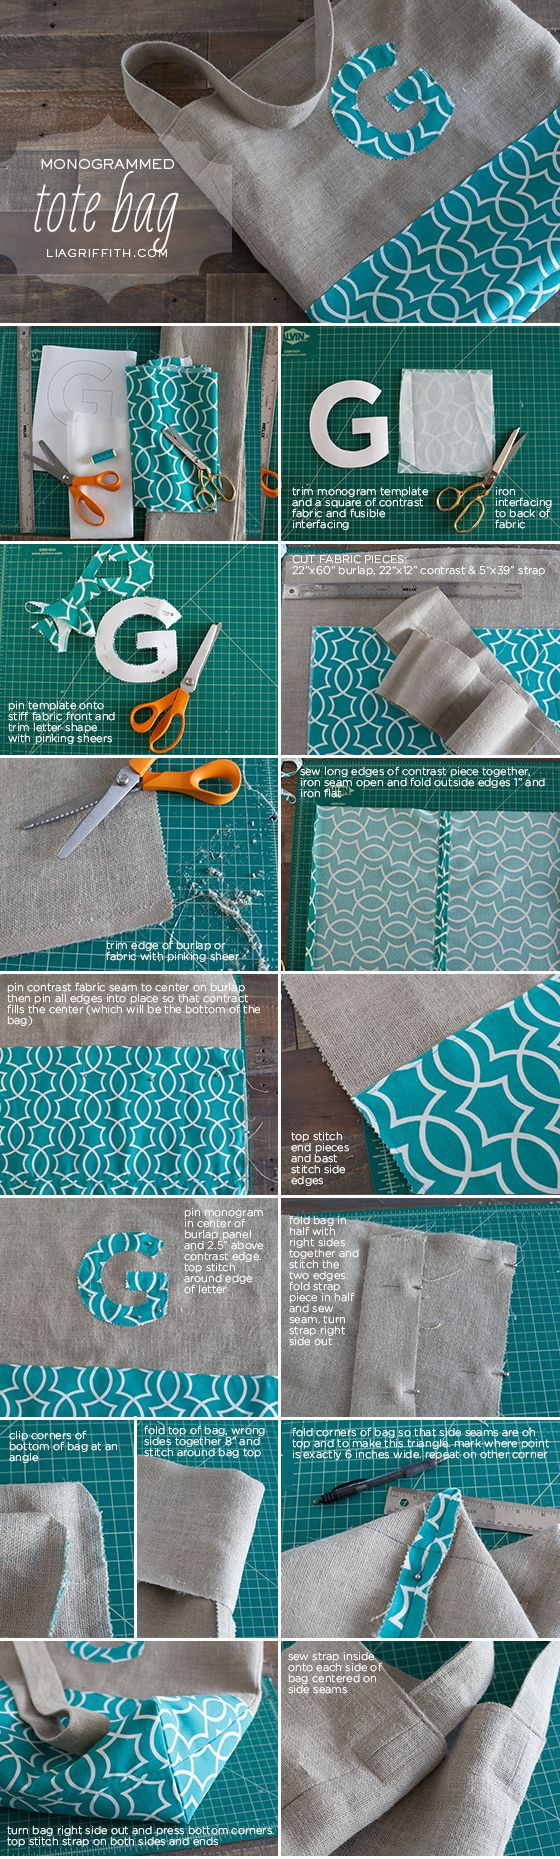 Monogrammed Tote Bag Tutorial and Free Large Monogram Letter Template